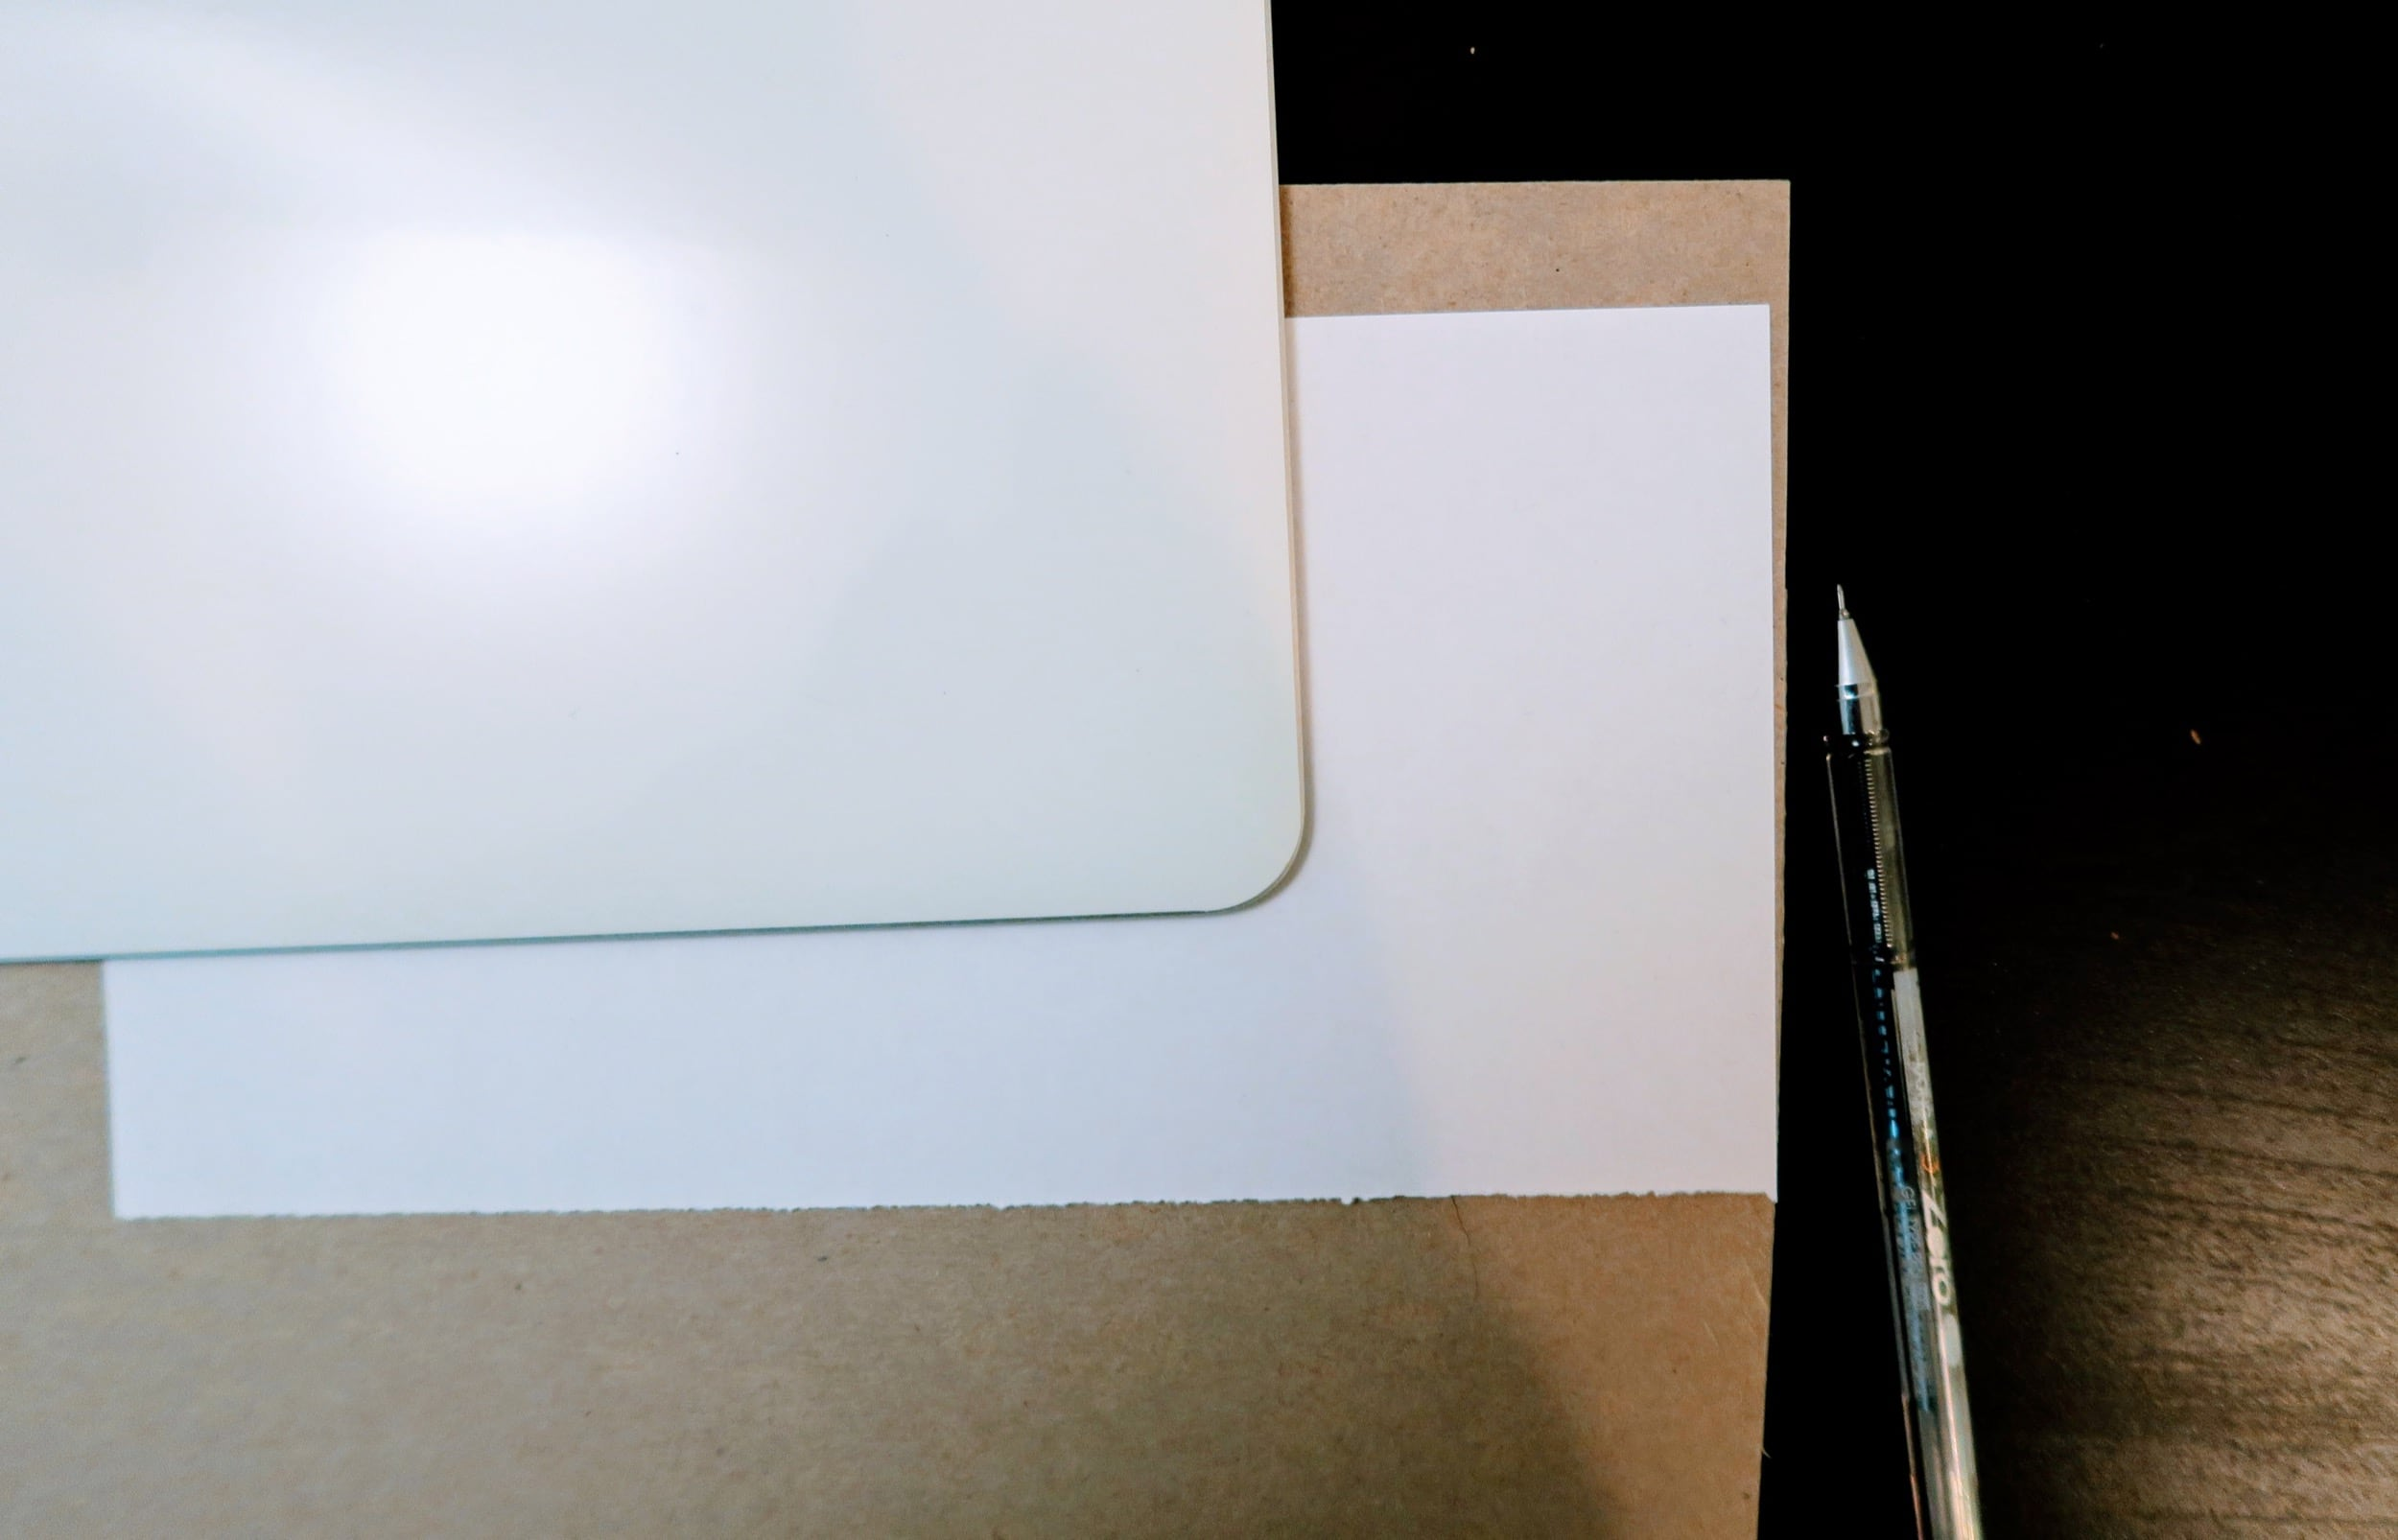 Tracing the laptop lid